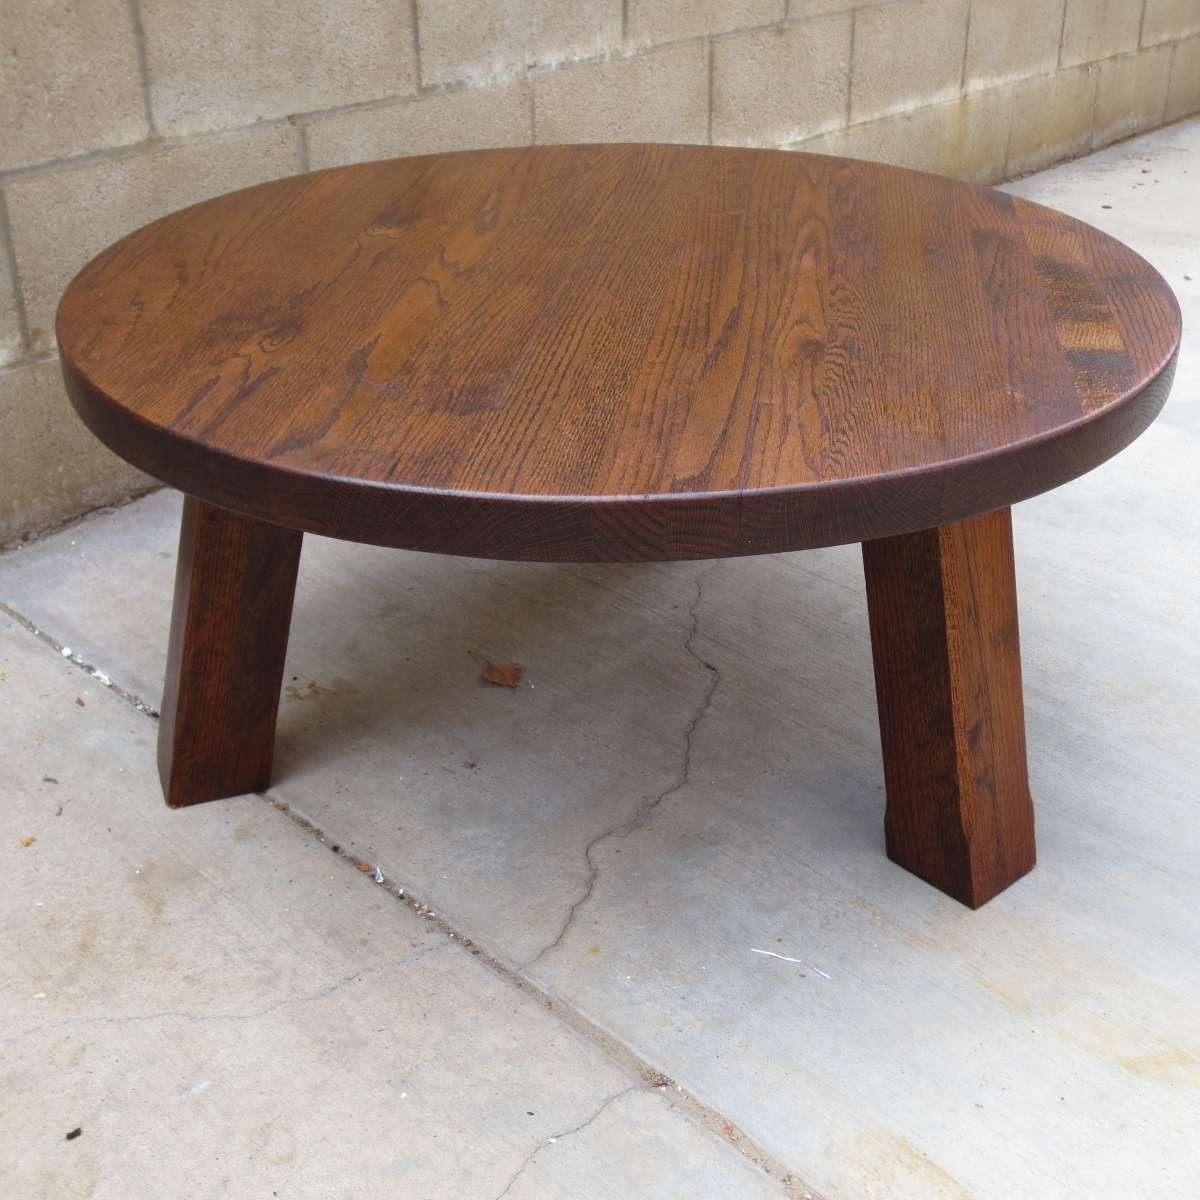 Coffee Table Small Round Oak Coffee Table Antique Tables Sale For Popular Round Oak Coffee Tables (View 3 of 20)